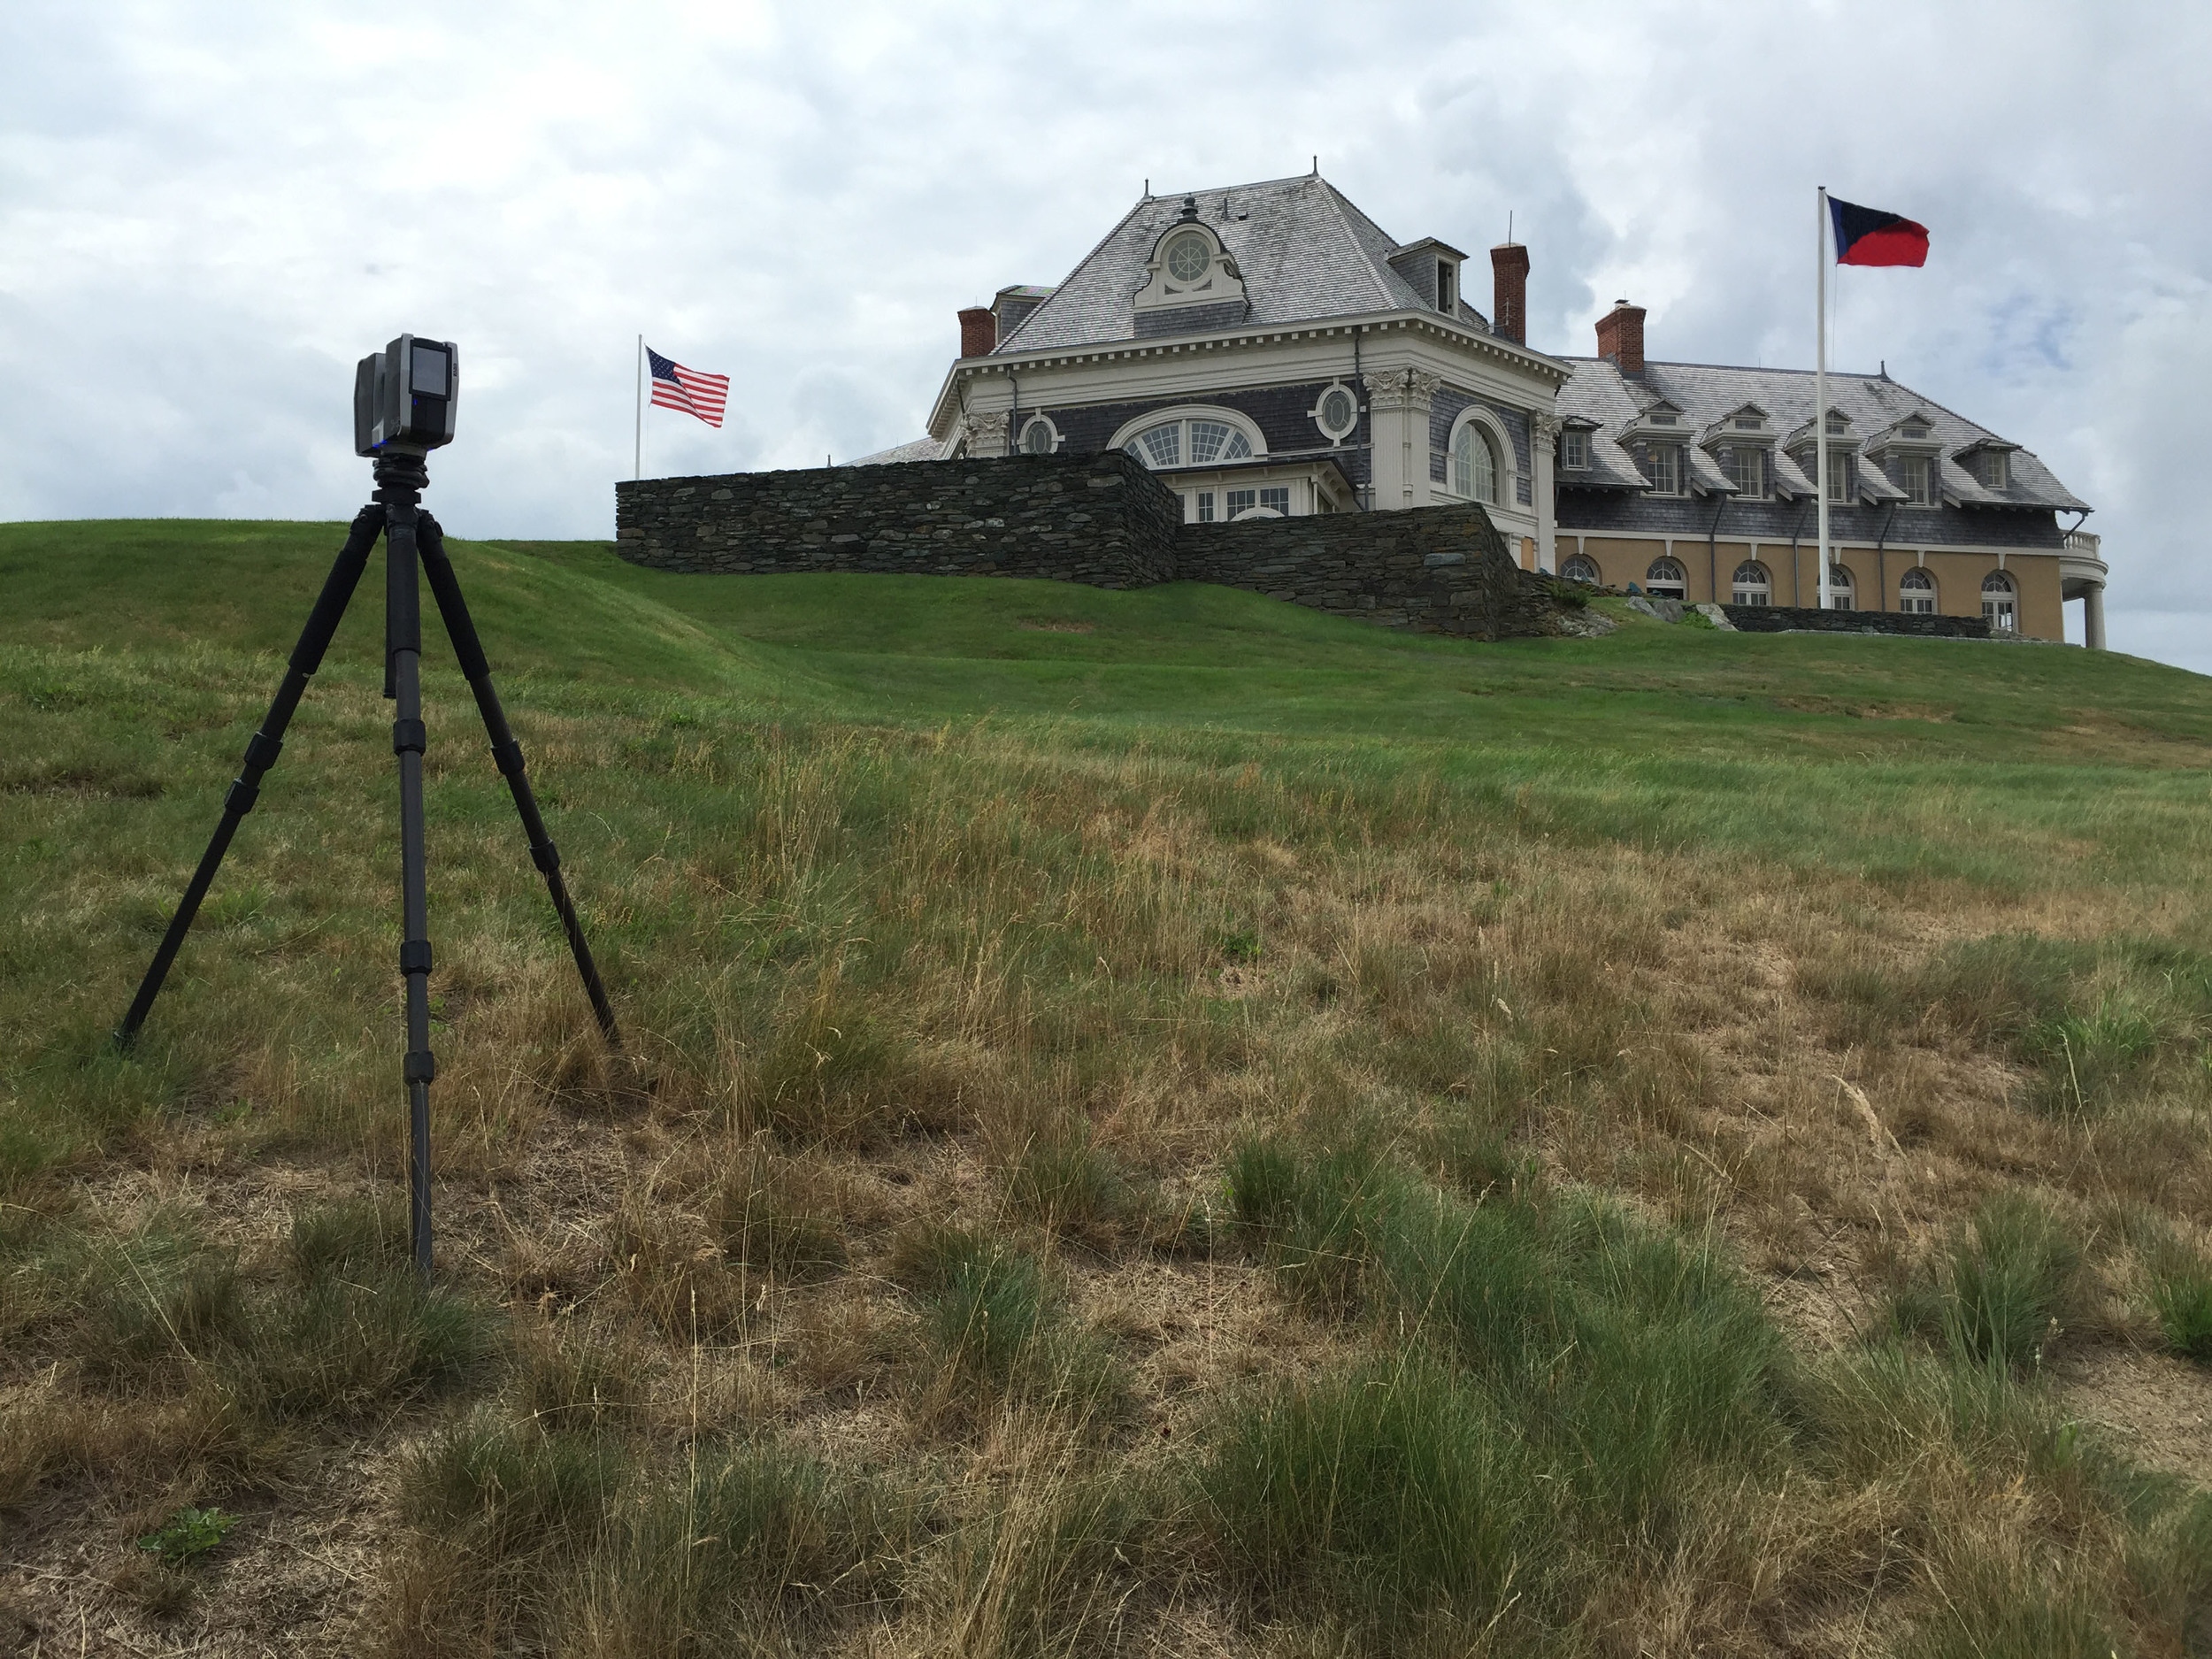 Our 3D laser scanner was used to record the building exterior and nearby topography.